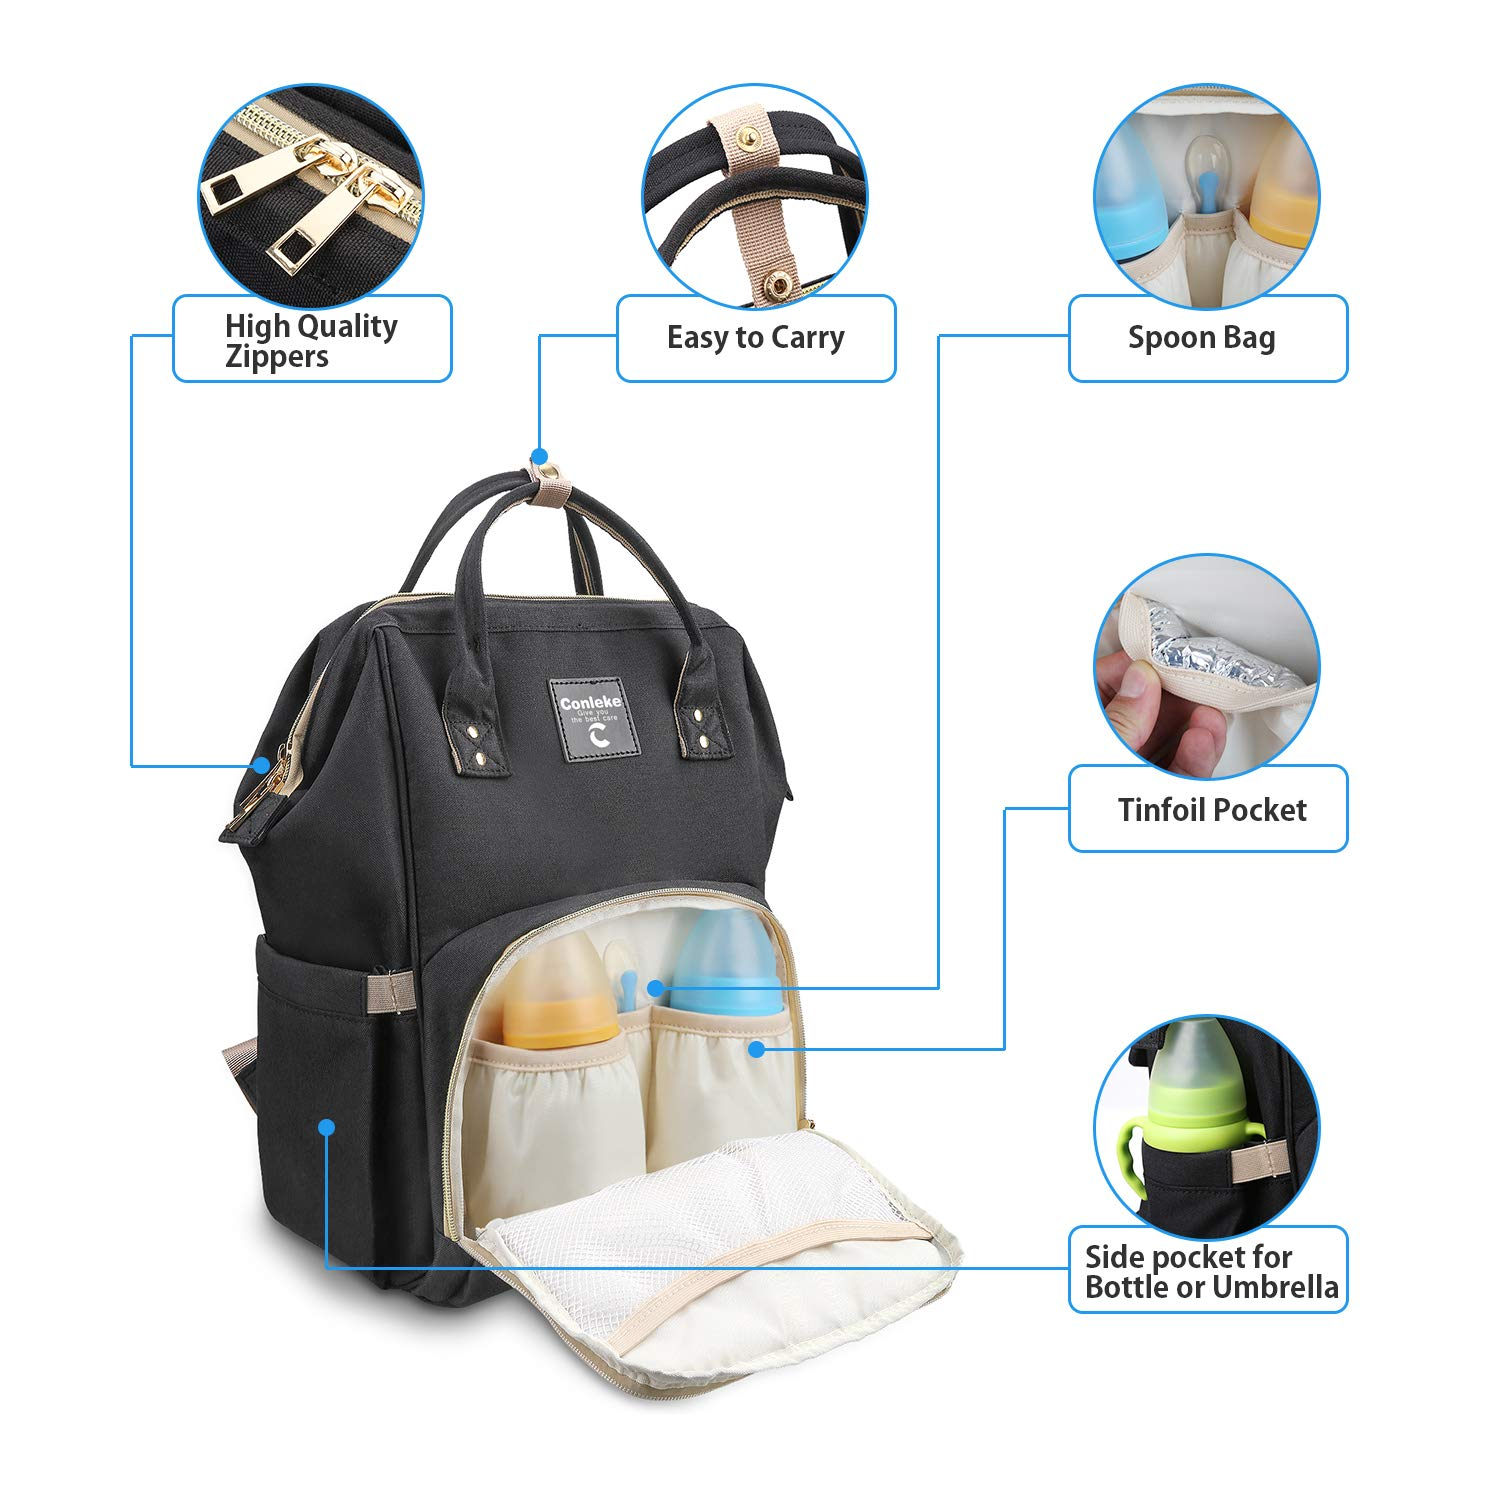 A-Grey Black1 Diaper Bag Backpack for Baby Care Multi-Functional Waterproof Travel Backpack Nappy Tote Bags Large Capacity Creative Fashion Package Best Gift for Mom/&Dad